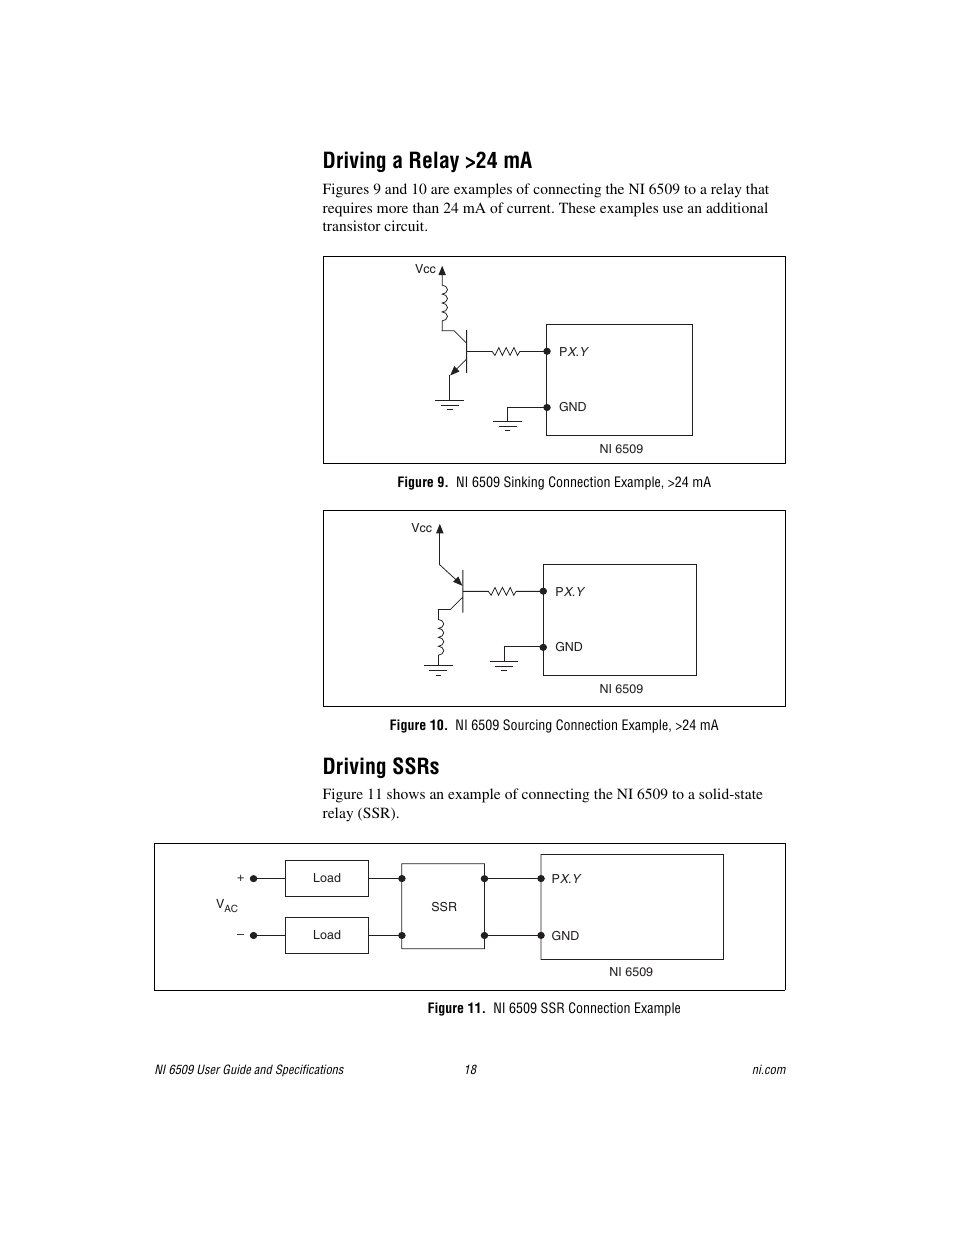 driving a relay 24 ma driving ssrs figure 11 ni 6509 ssr connection example national instruments ni 6509 user manual page 18 23